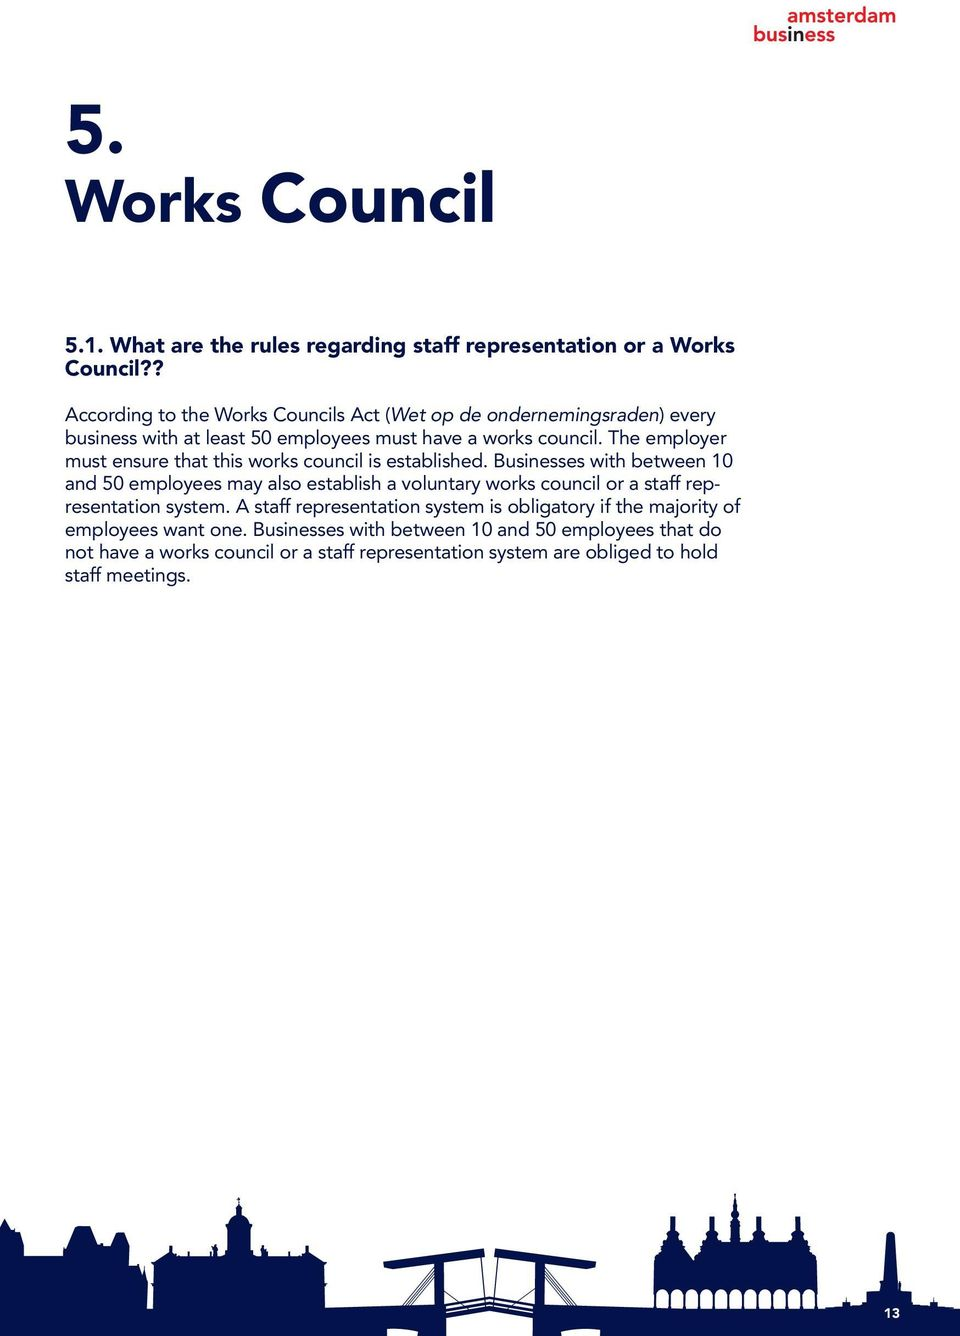 The employer must ensure that this works council is established.